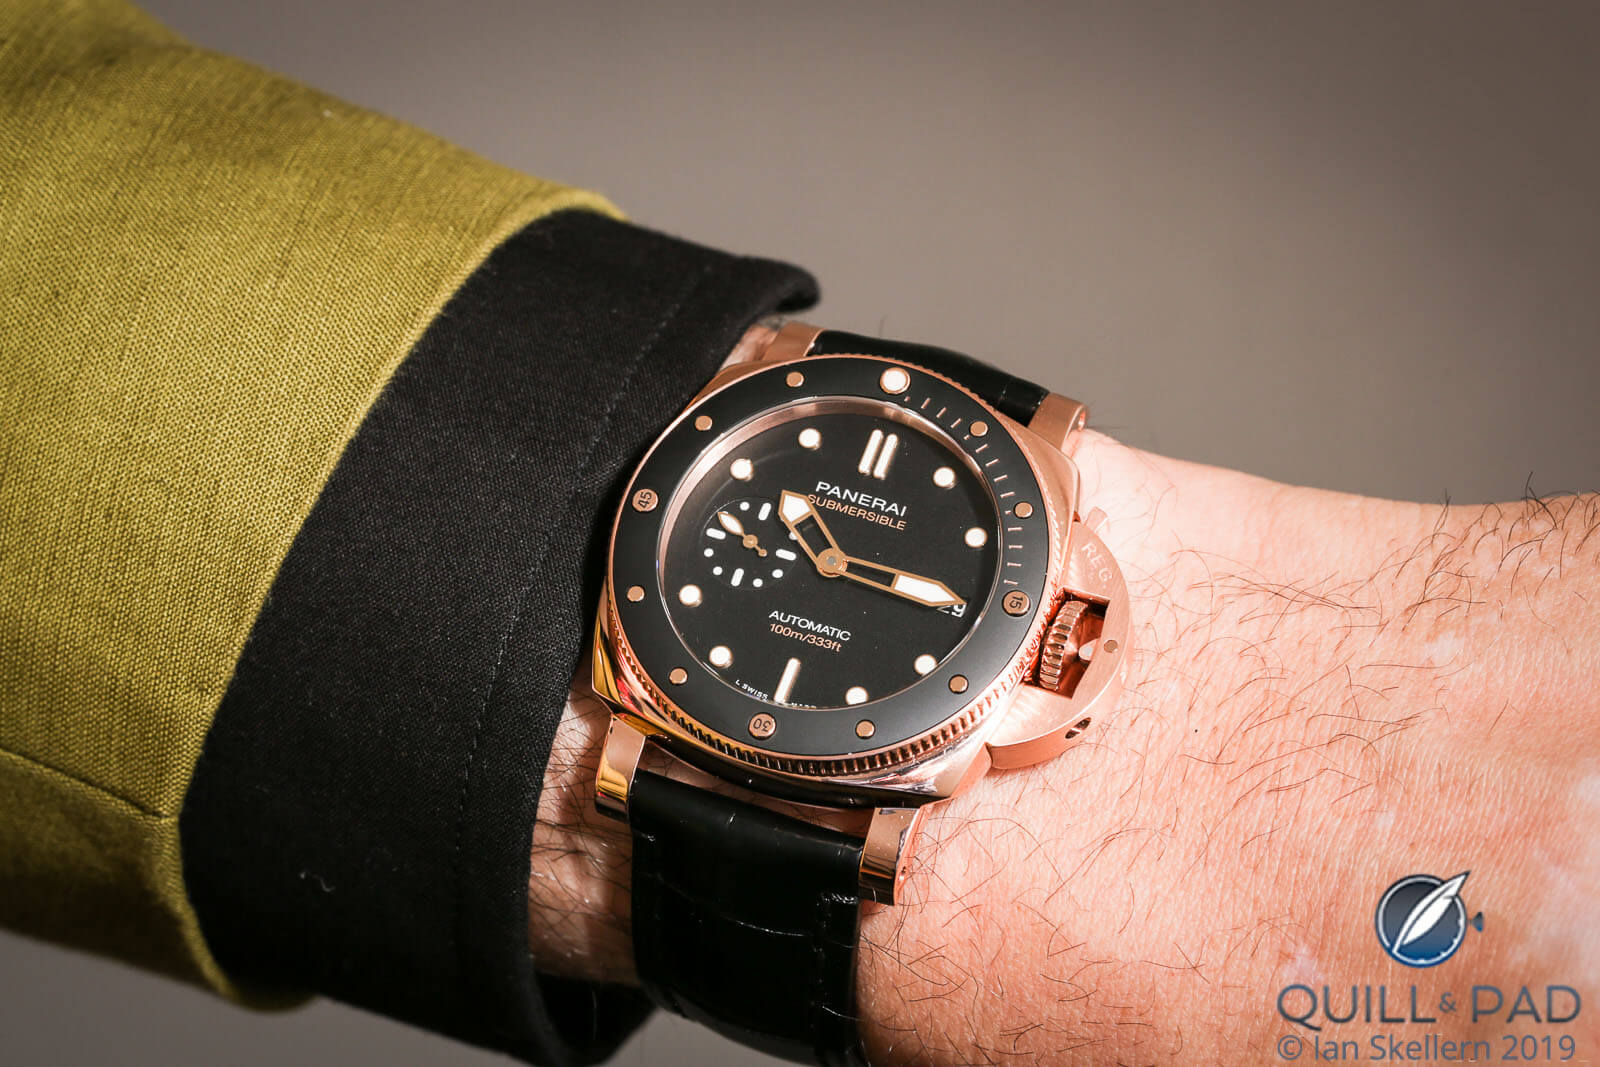 Panerai Submersible 42mm gold/black on the wrist